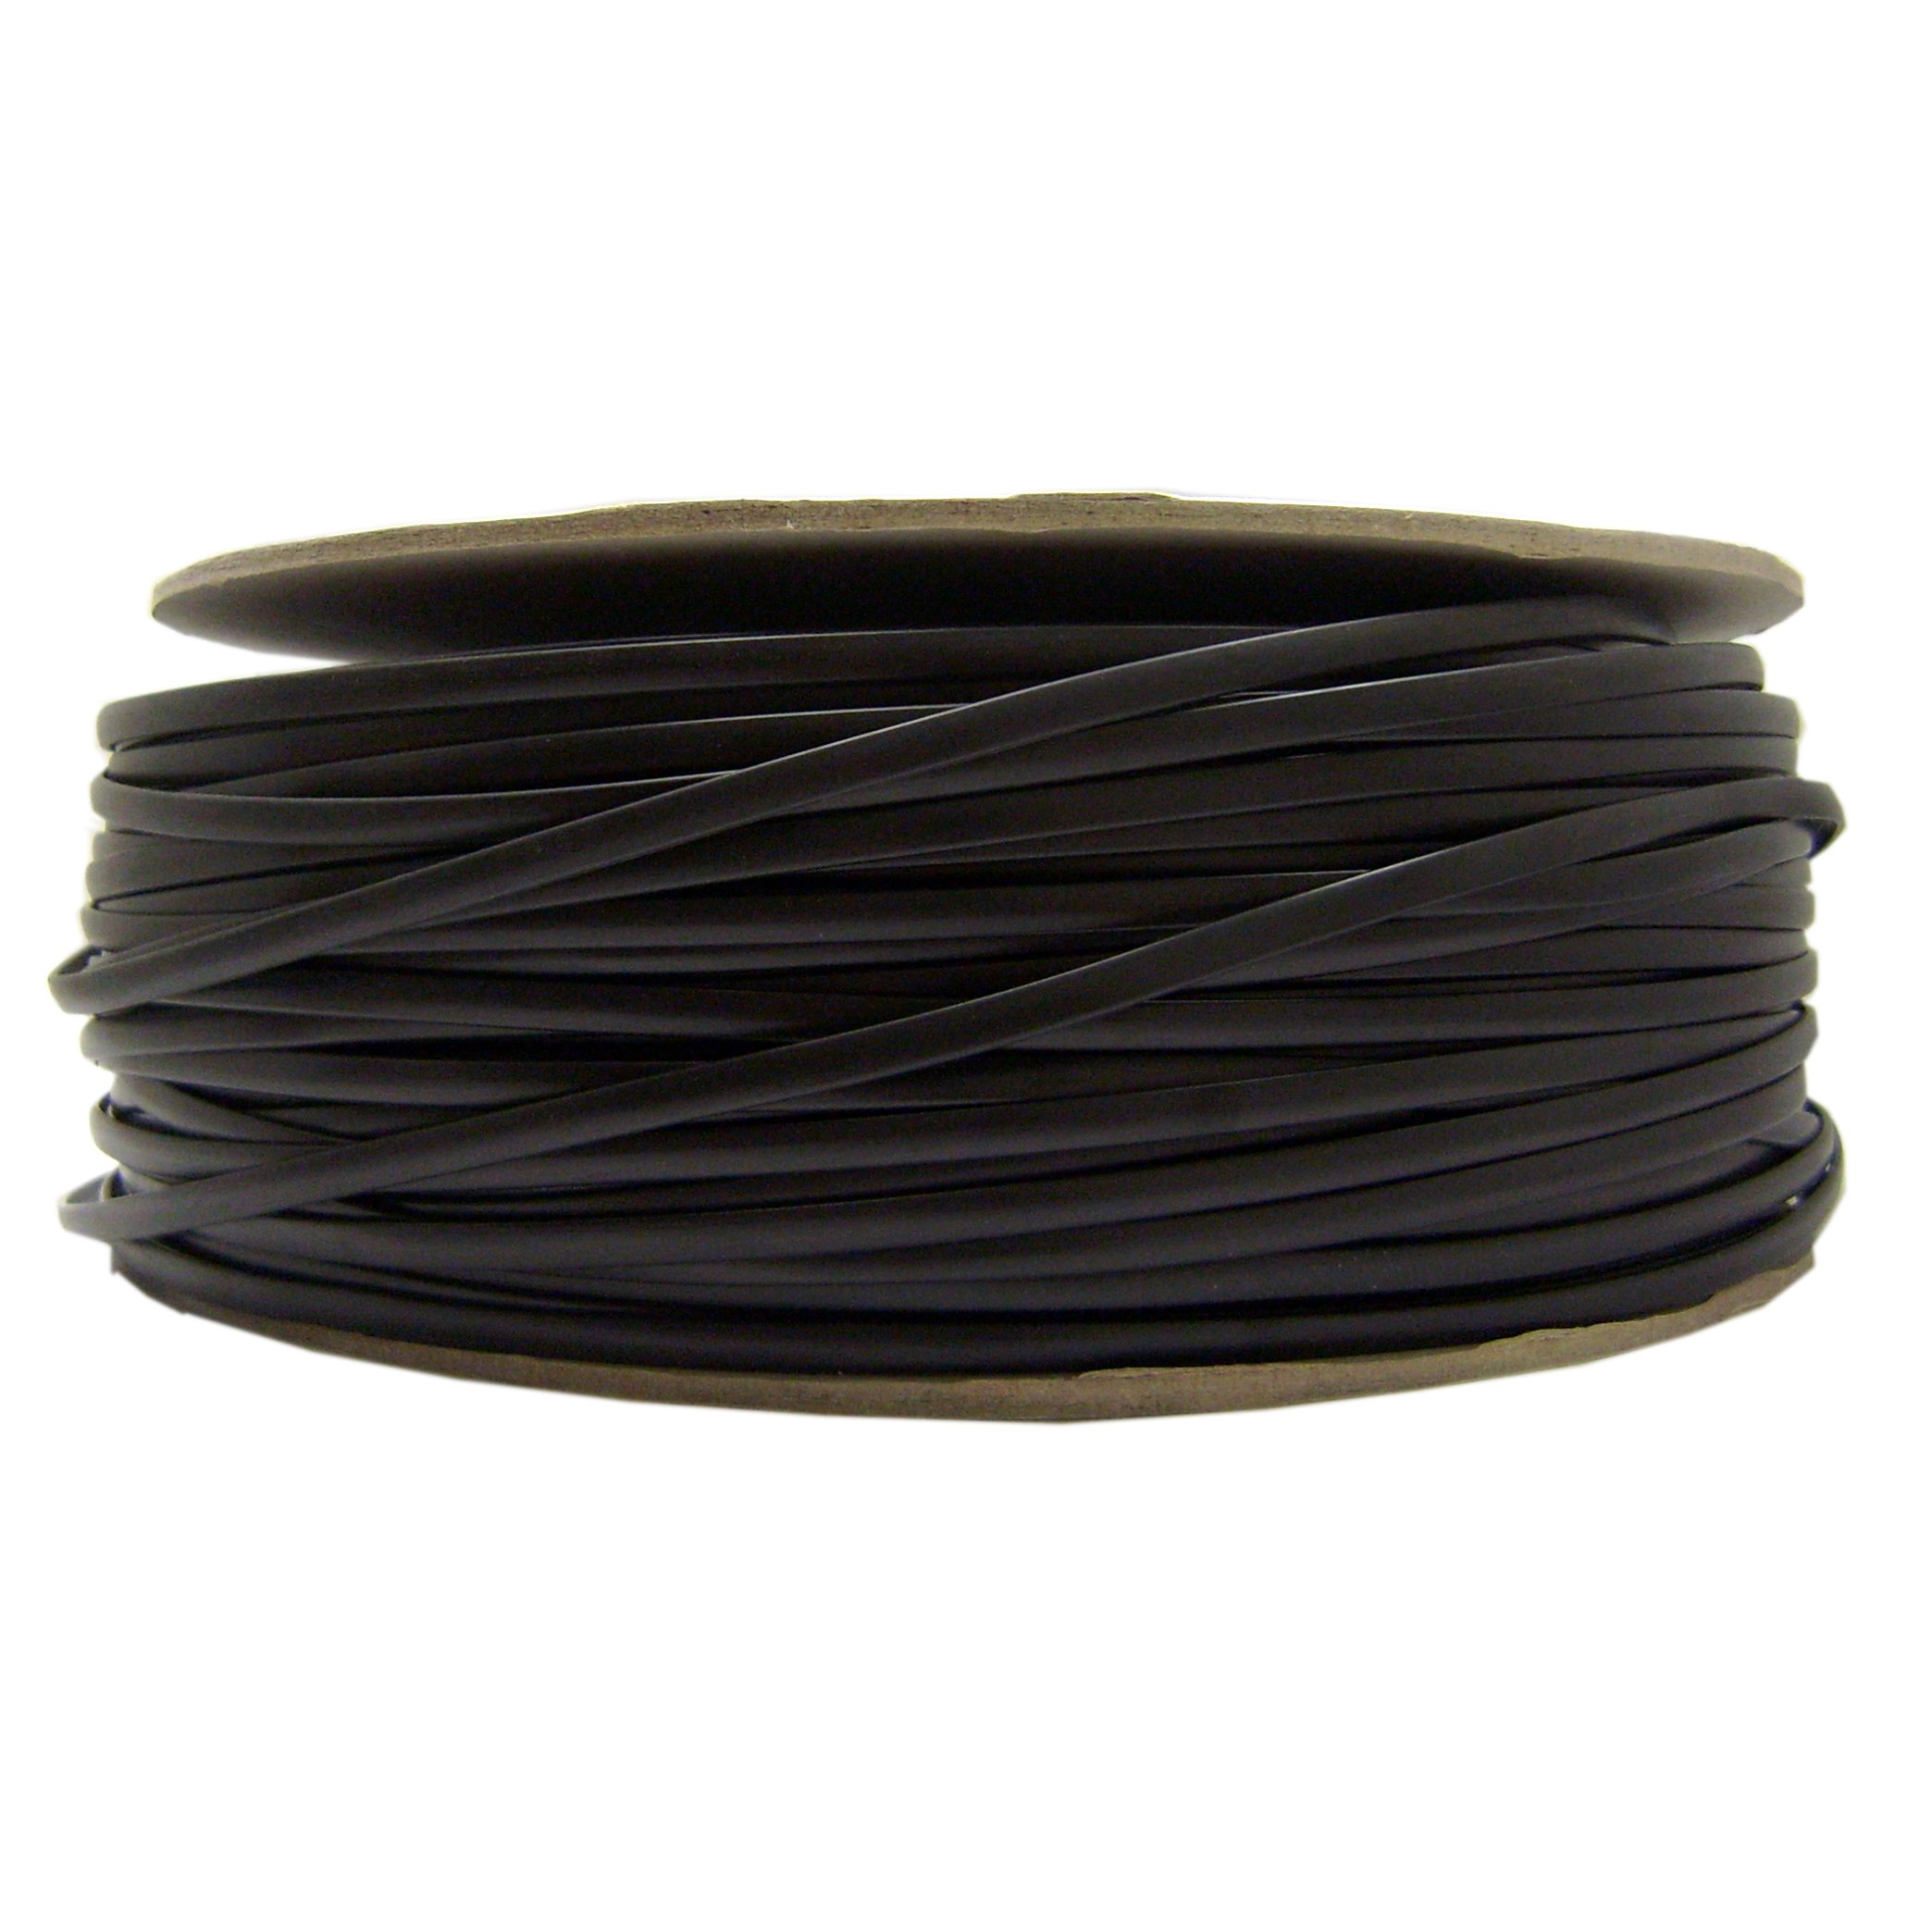 ACCL 26 AWG/6 Conductor Phone Cord, Bare end, Spool, Black, 1000ft, 1pk